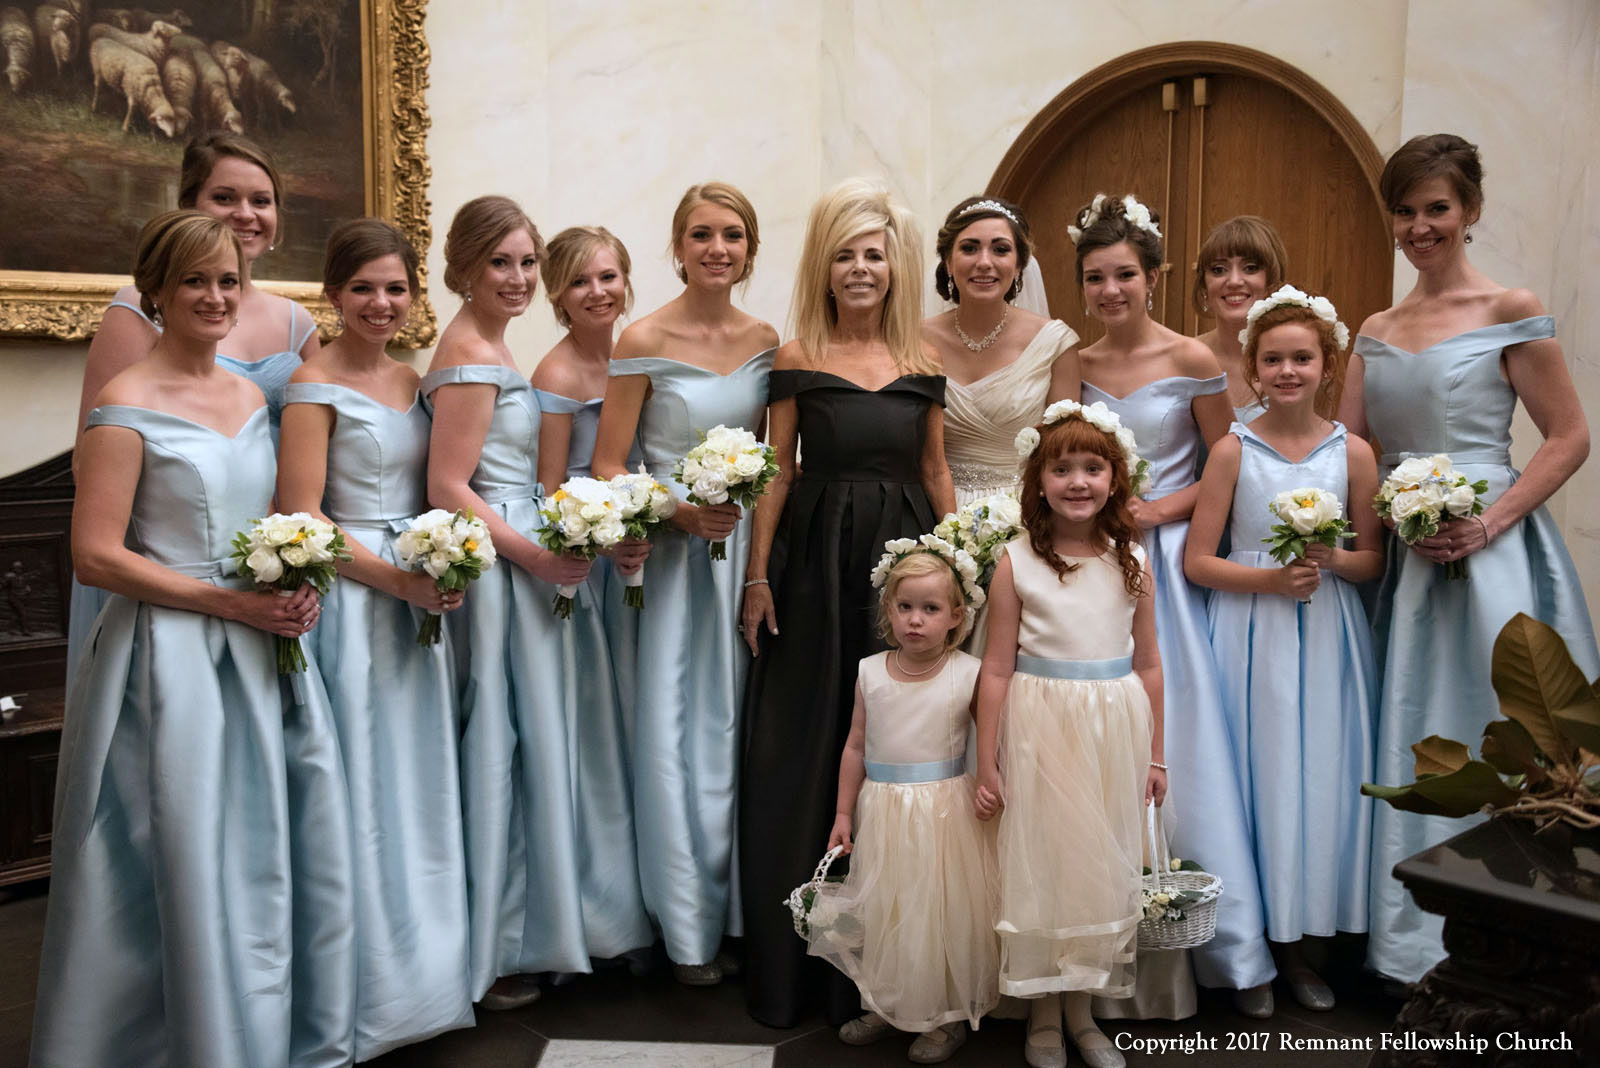 Remnant-Fellowship-Purdy-Wolgemuth-Covenant-Wedding-Bride-Bridesmaids-Gwen